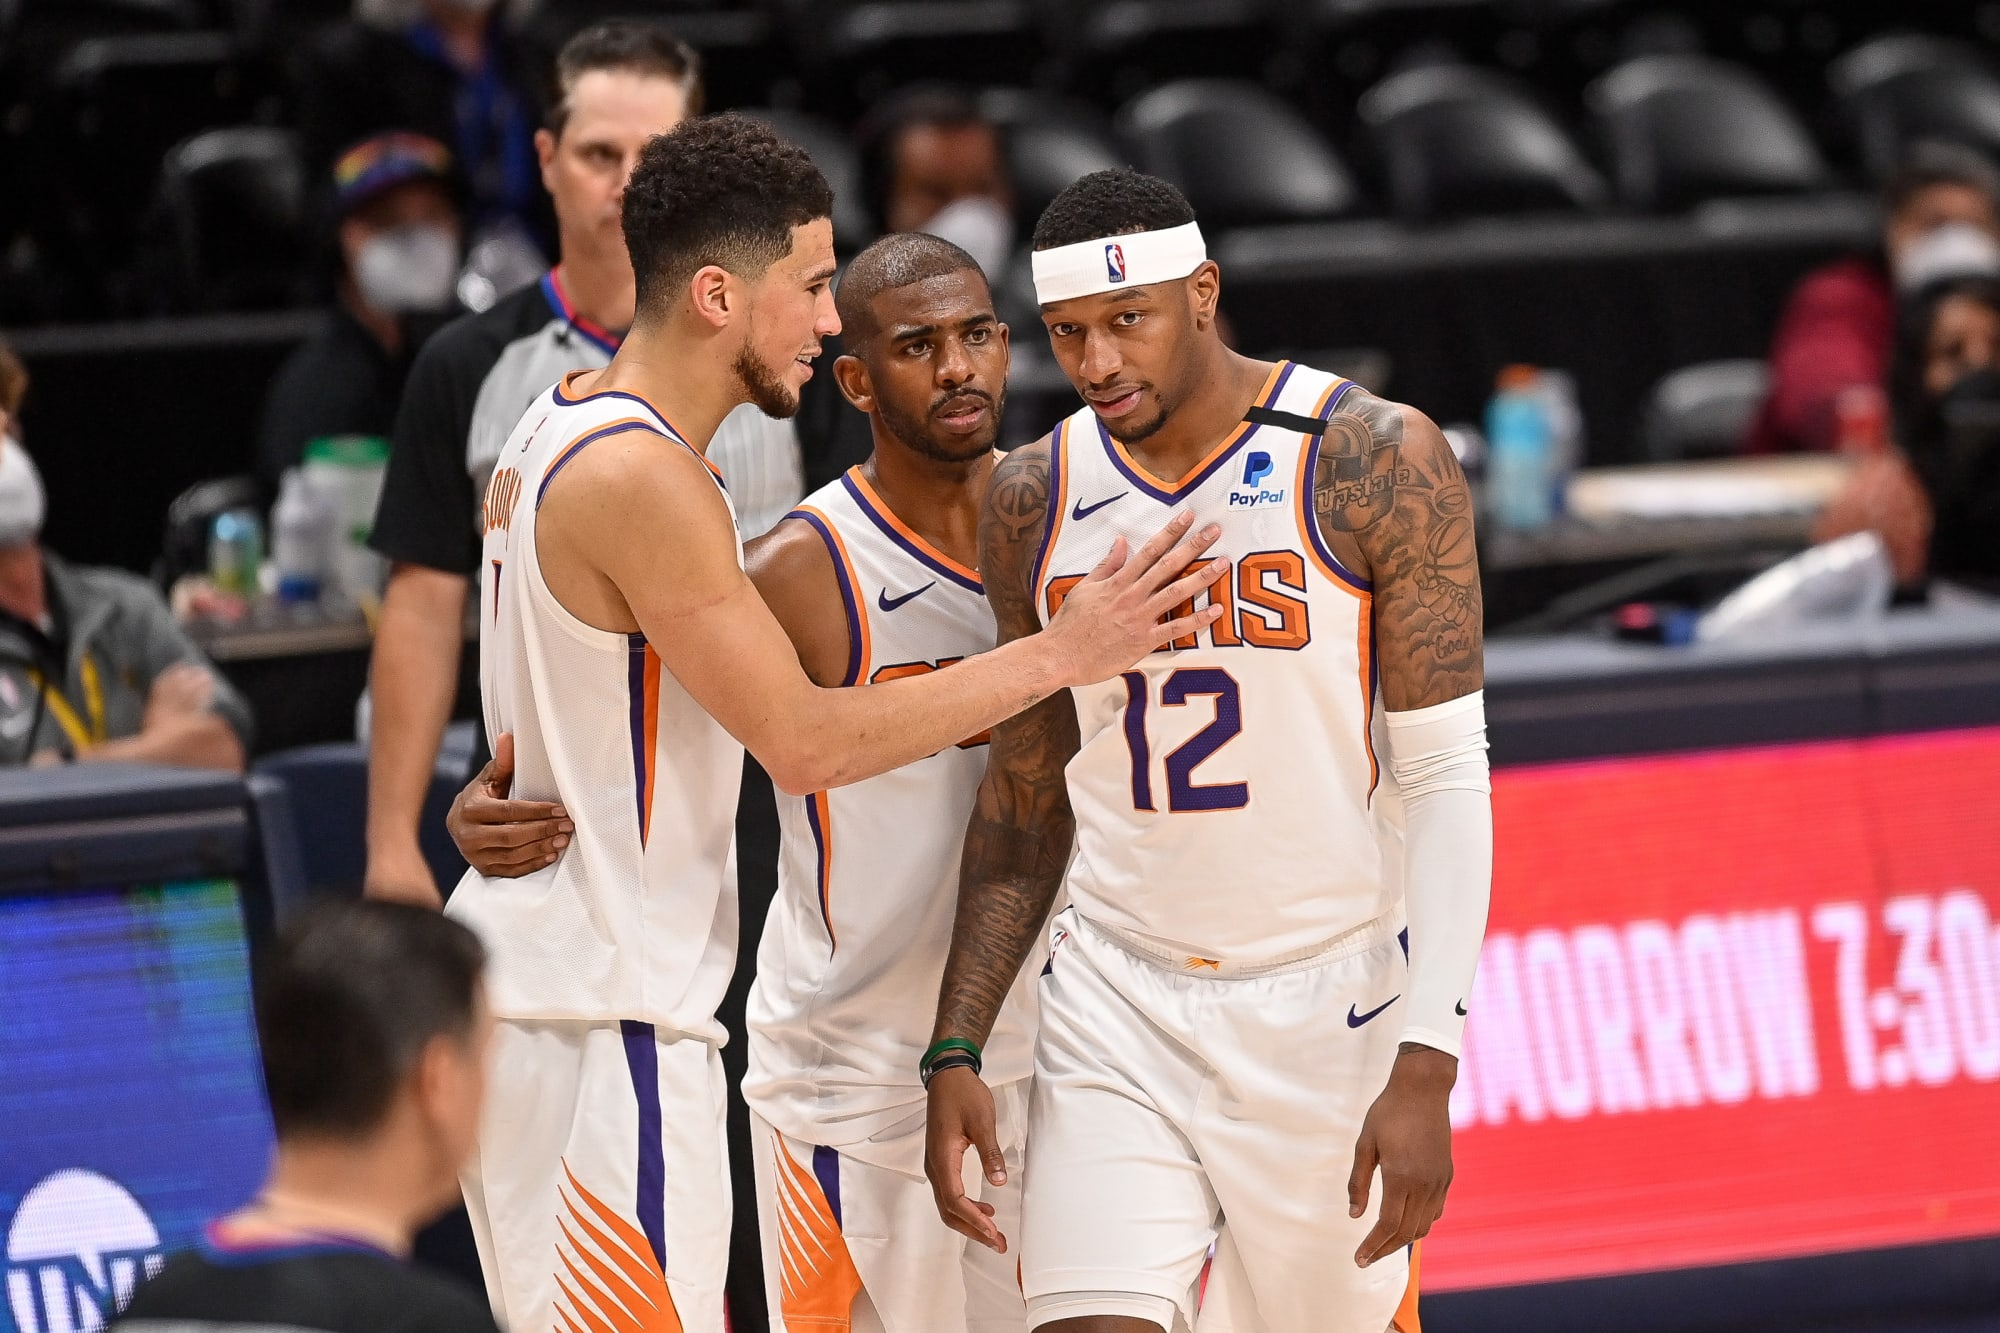 Where can I watch the Suns-Clippers game tonight? Suns vs. Clippers TV channel and live stream